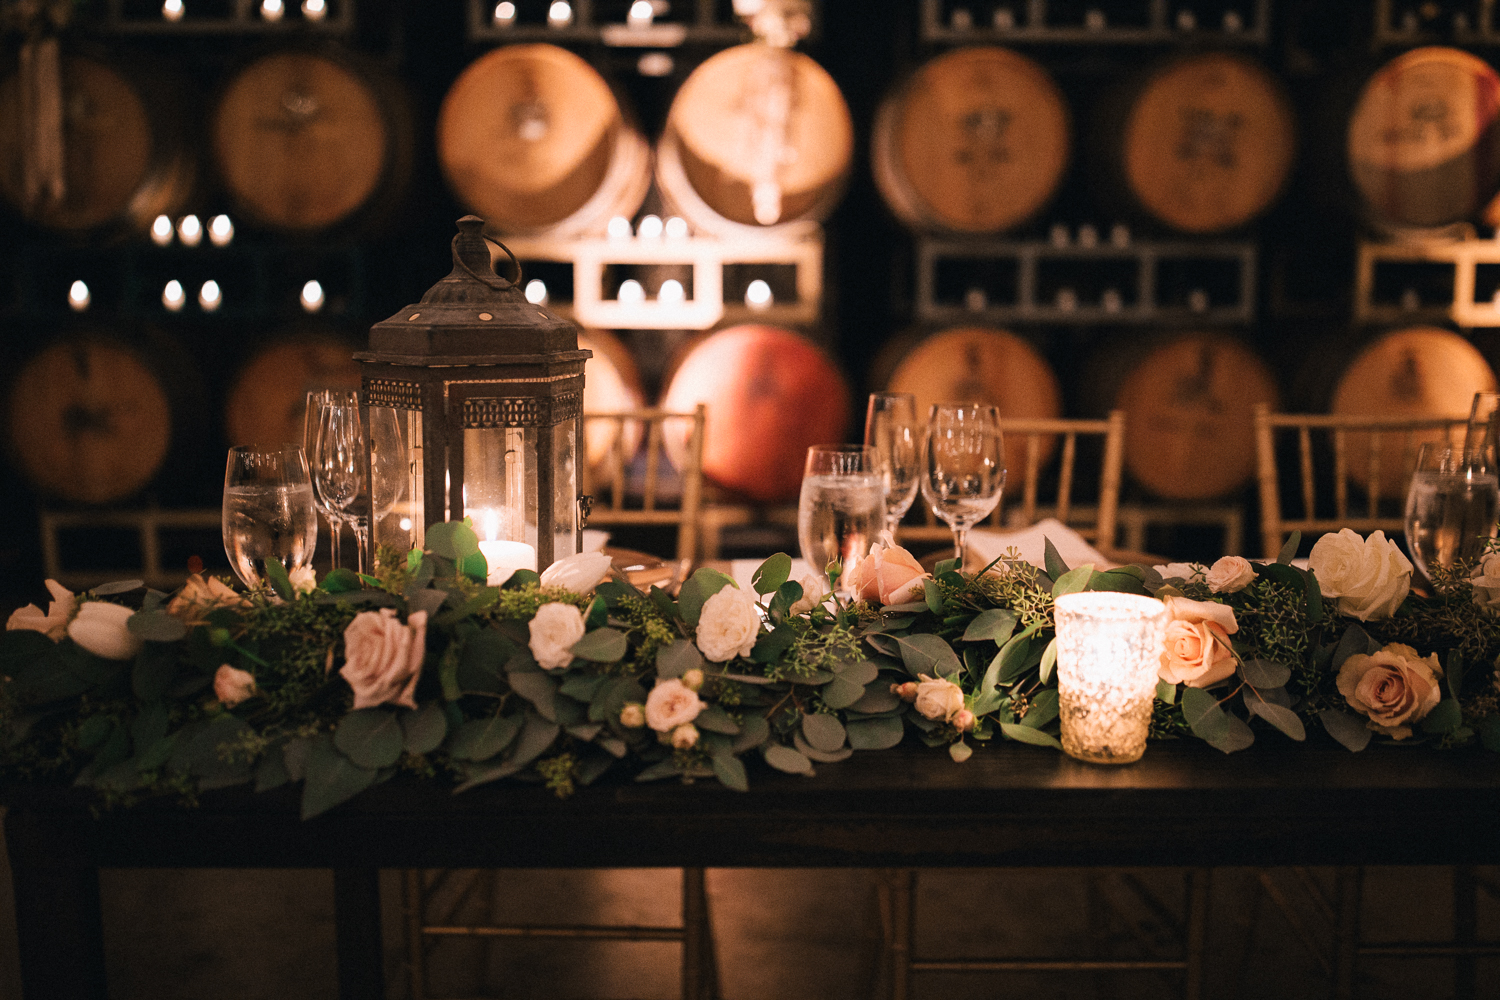 2018_08_ 112018.08.11 Cline Vinyard Wedding Blog Photos Edited For Web 0067.jpg